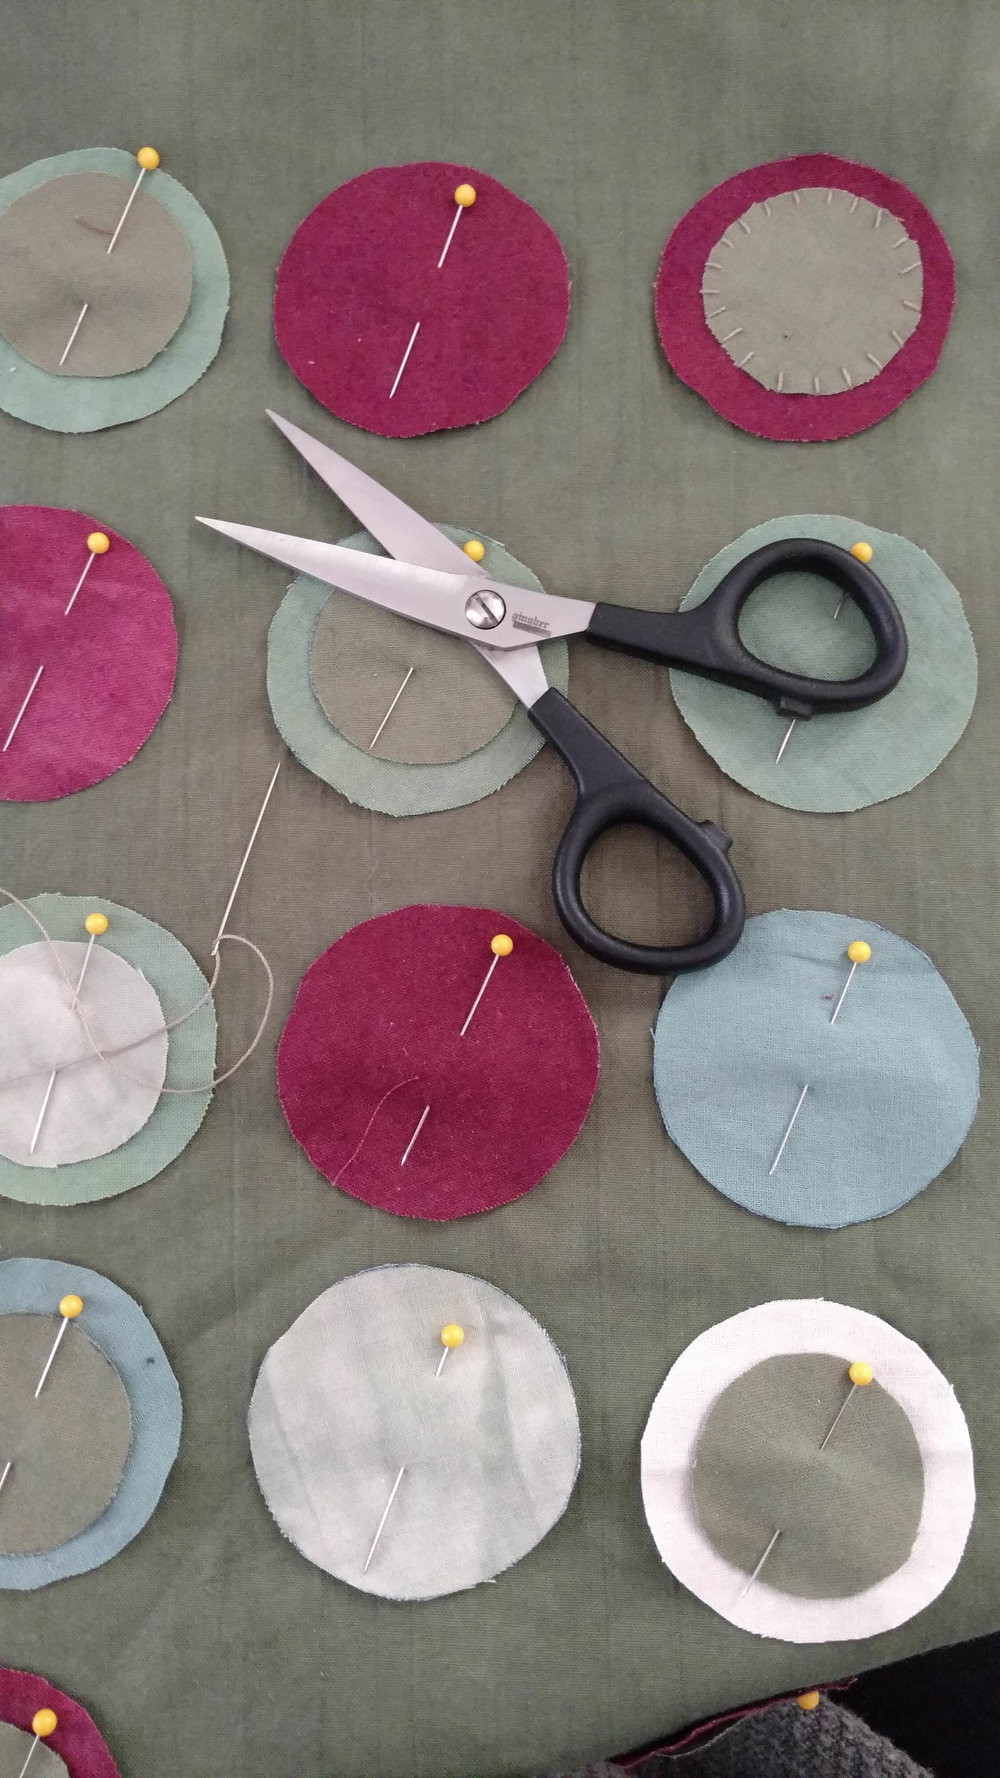 Stitching experiments.